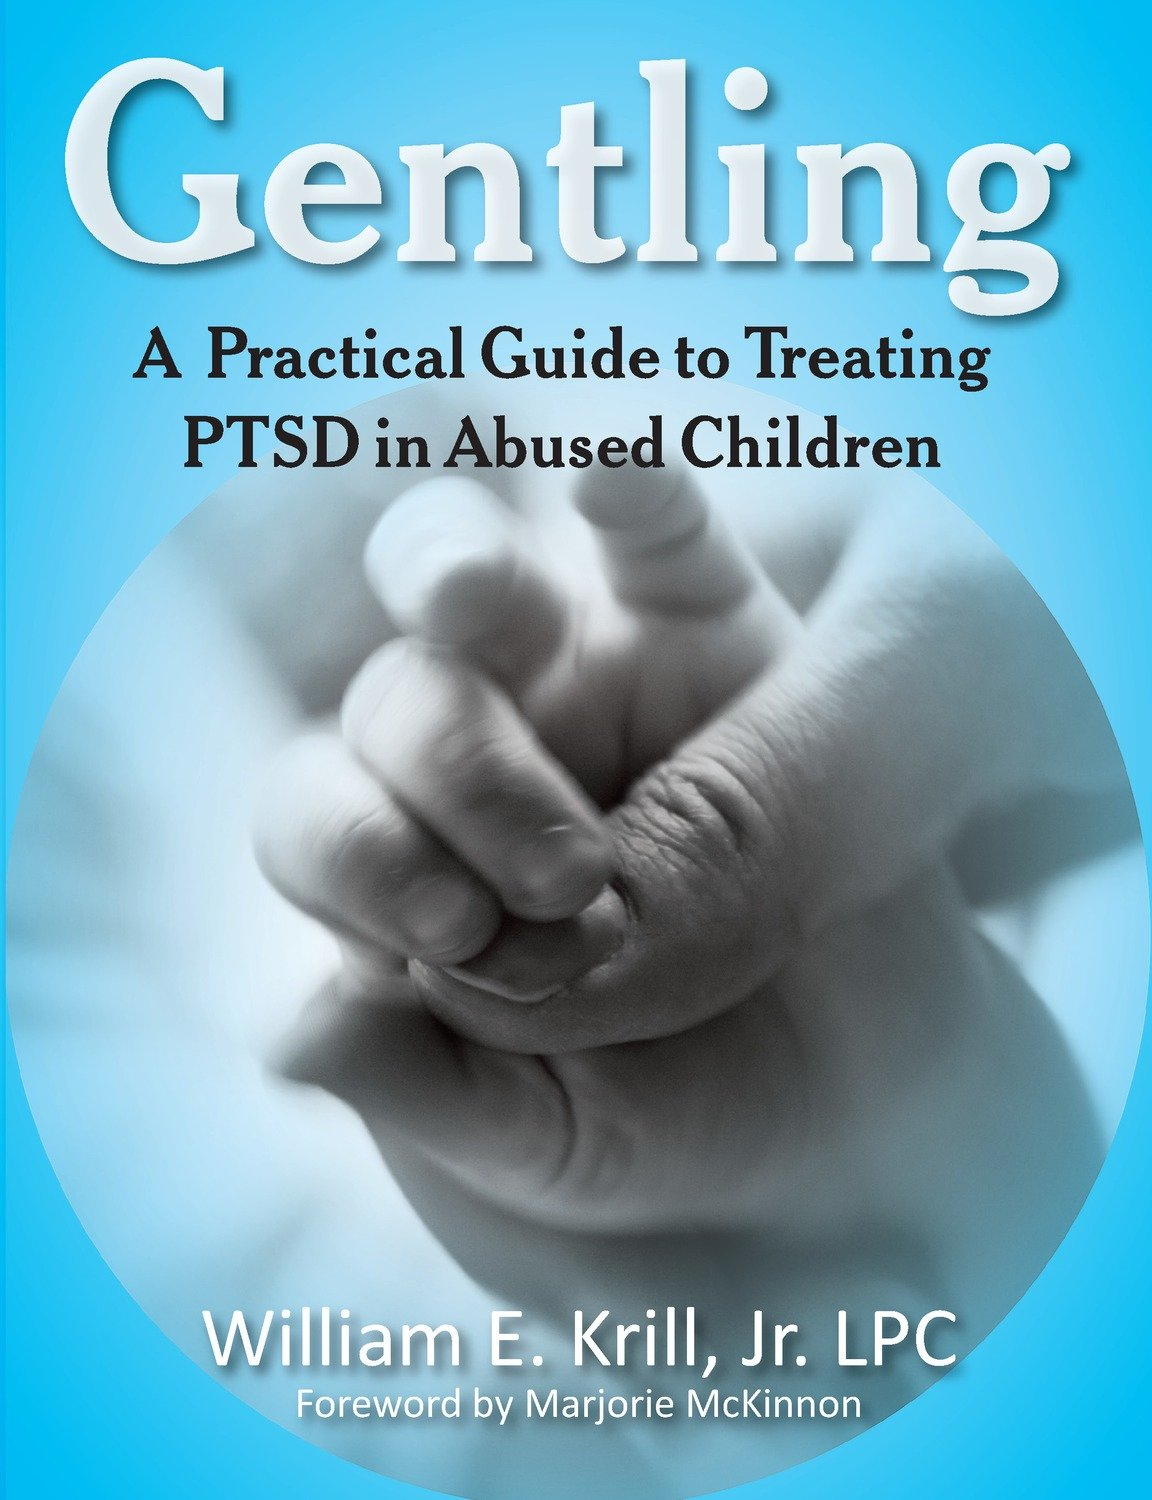 Gentling: A Practical Guide to Treating PTSD in Abused Children